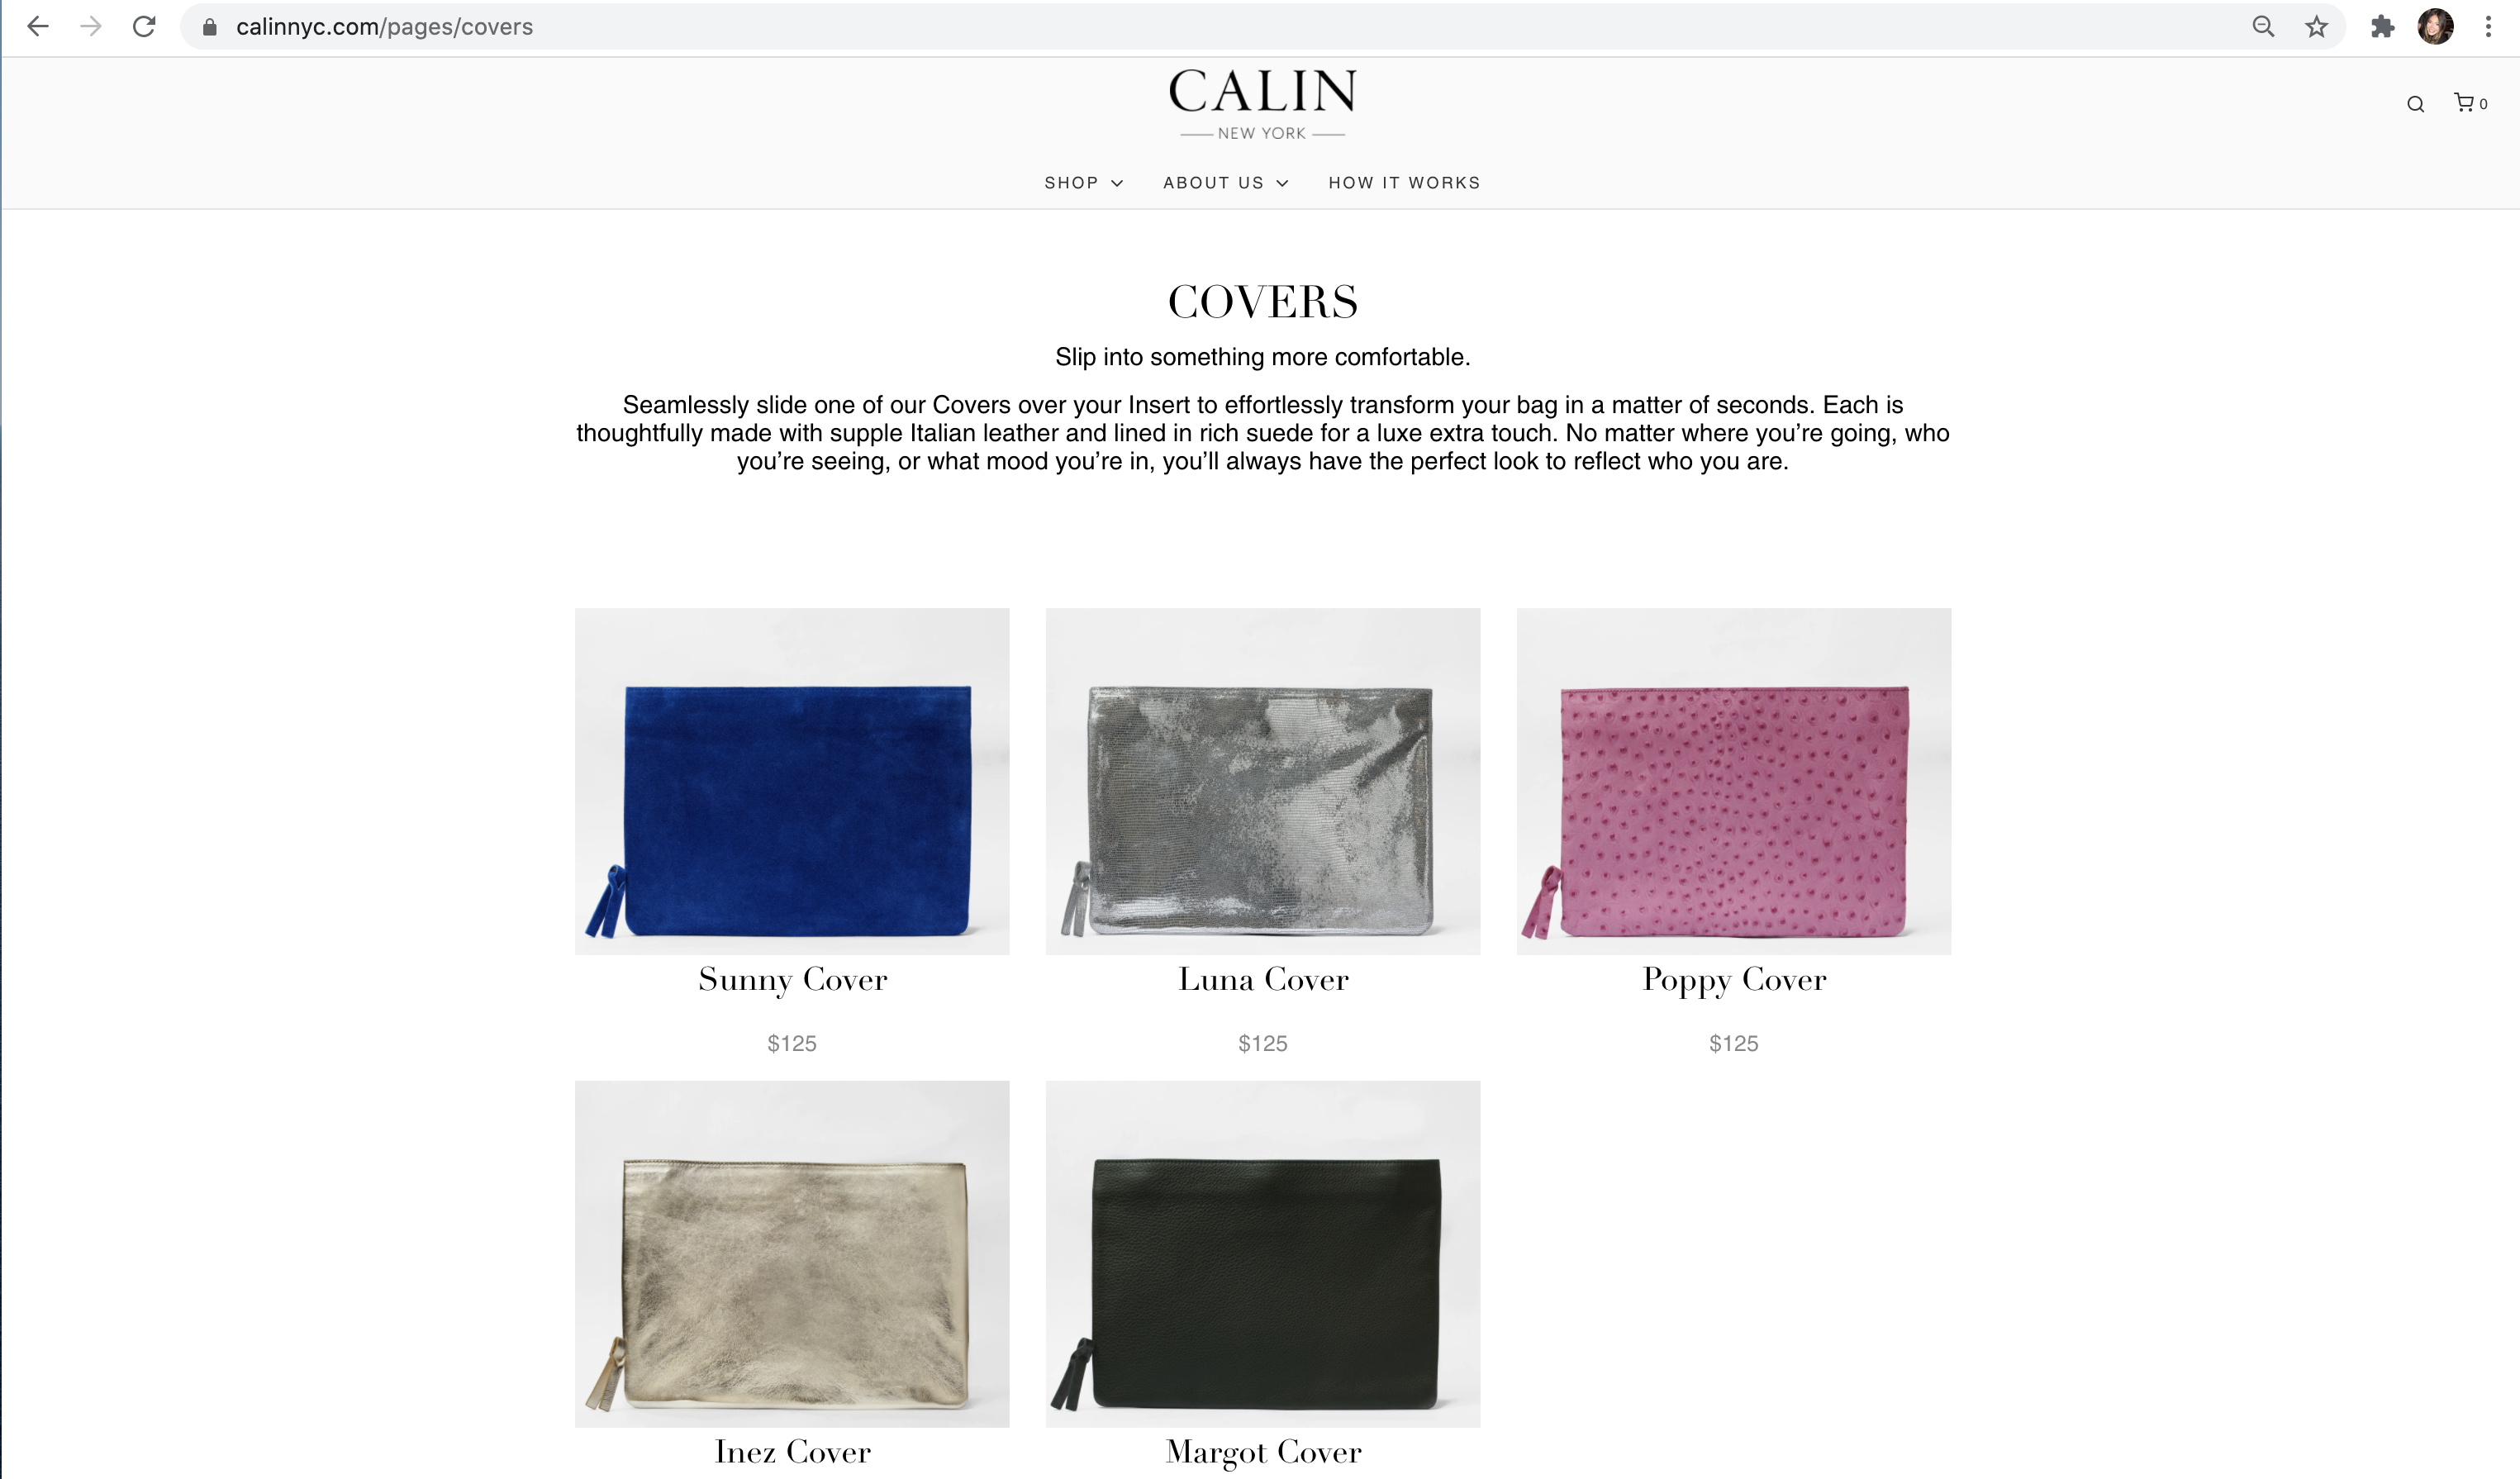 Calin NYC product launch